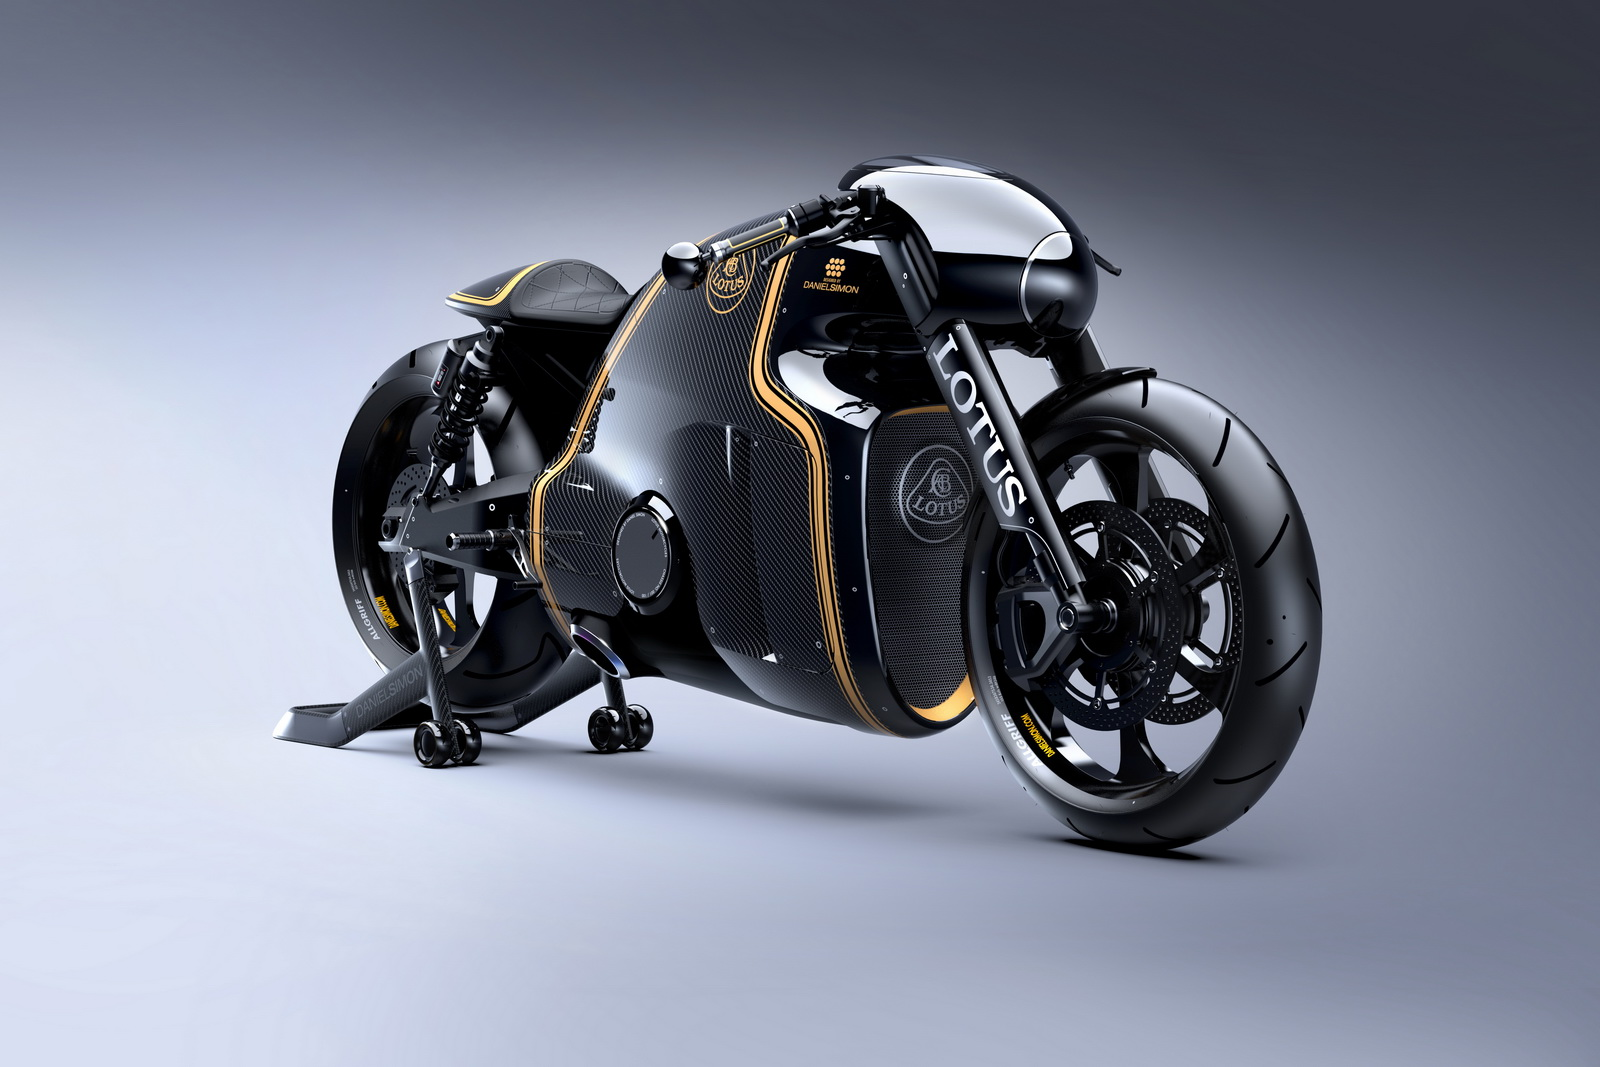 The bike will be built in limited numbers (just 100 examples) under license  by Kodewa of Germany with the support of the Holzder Group.